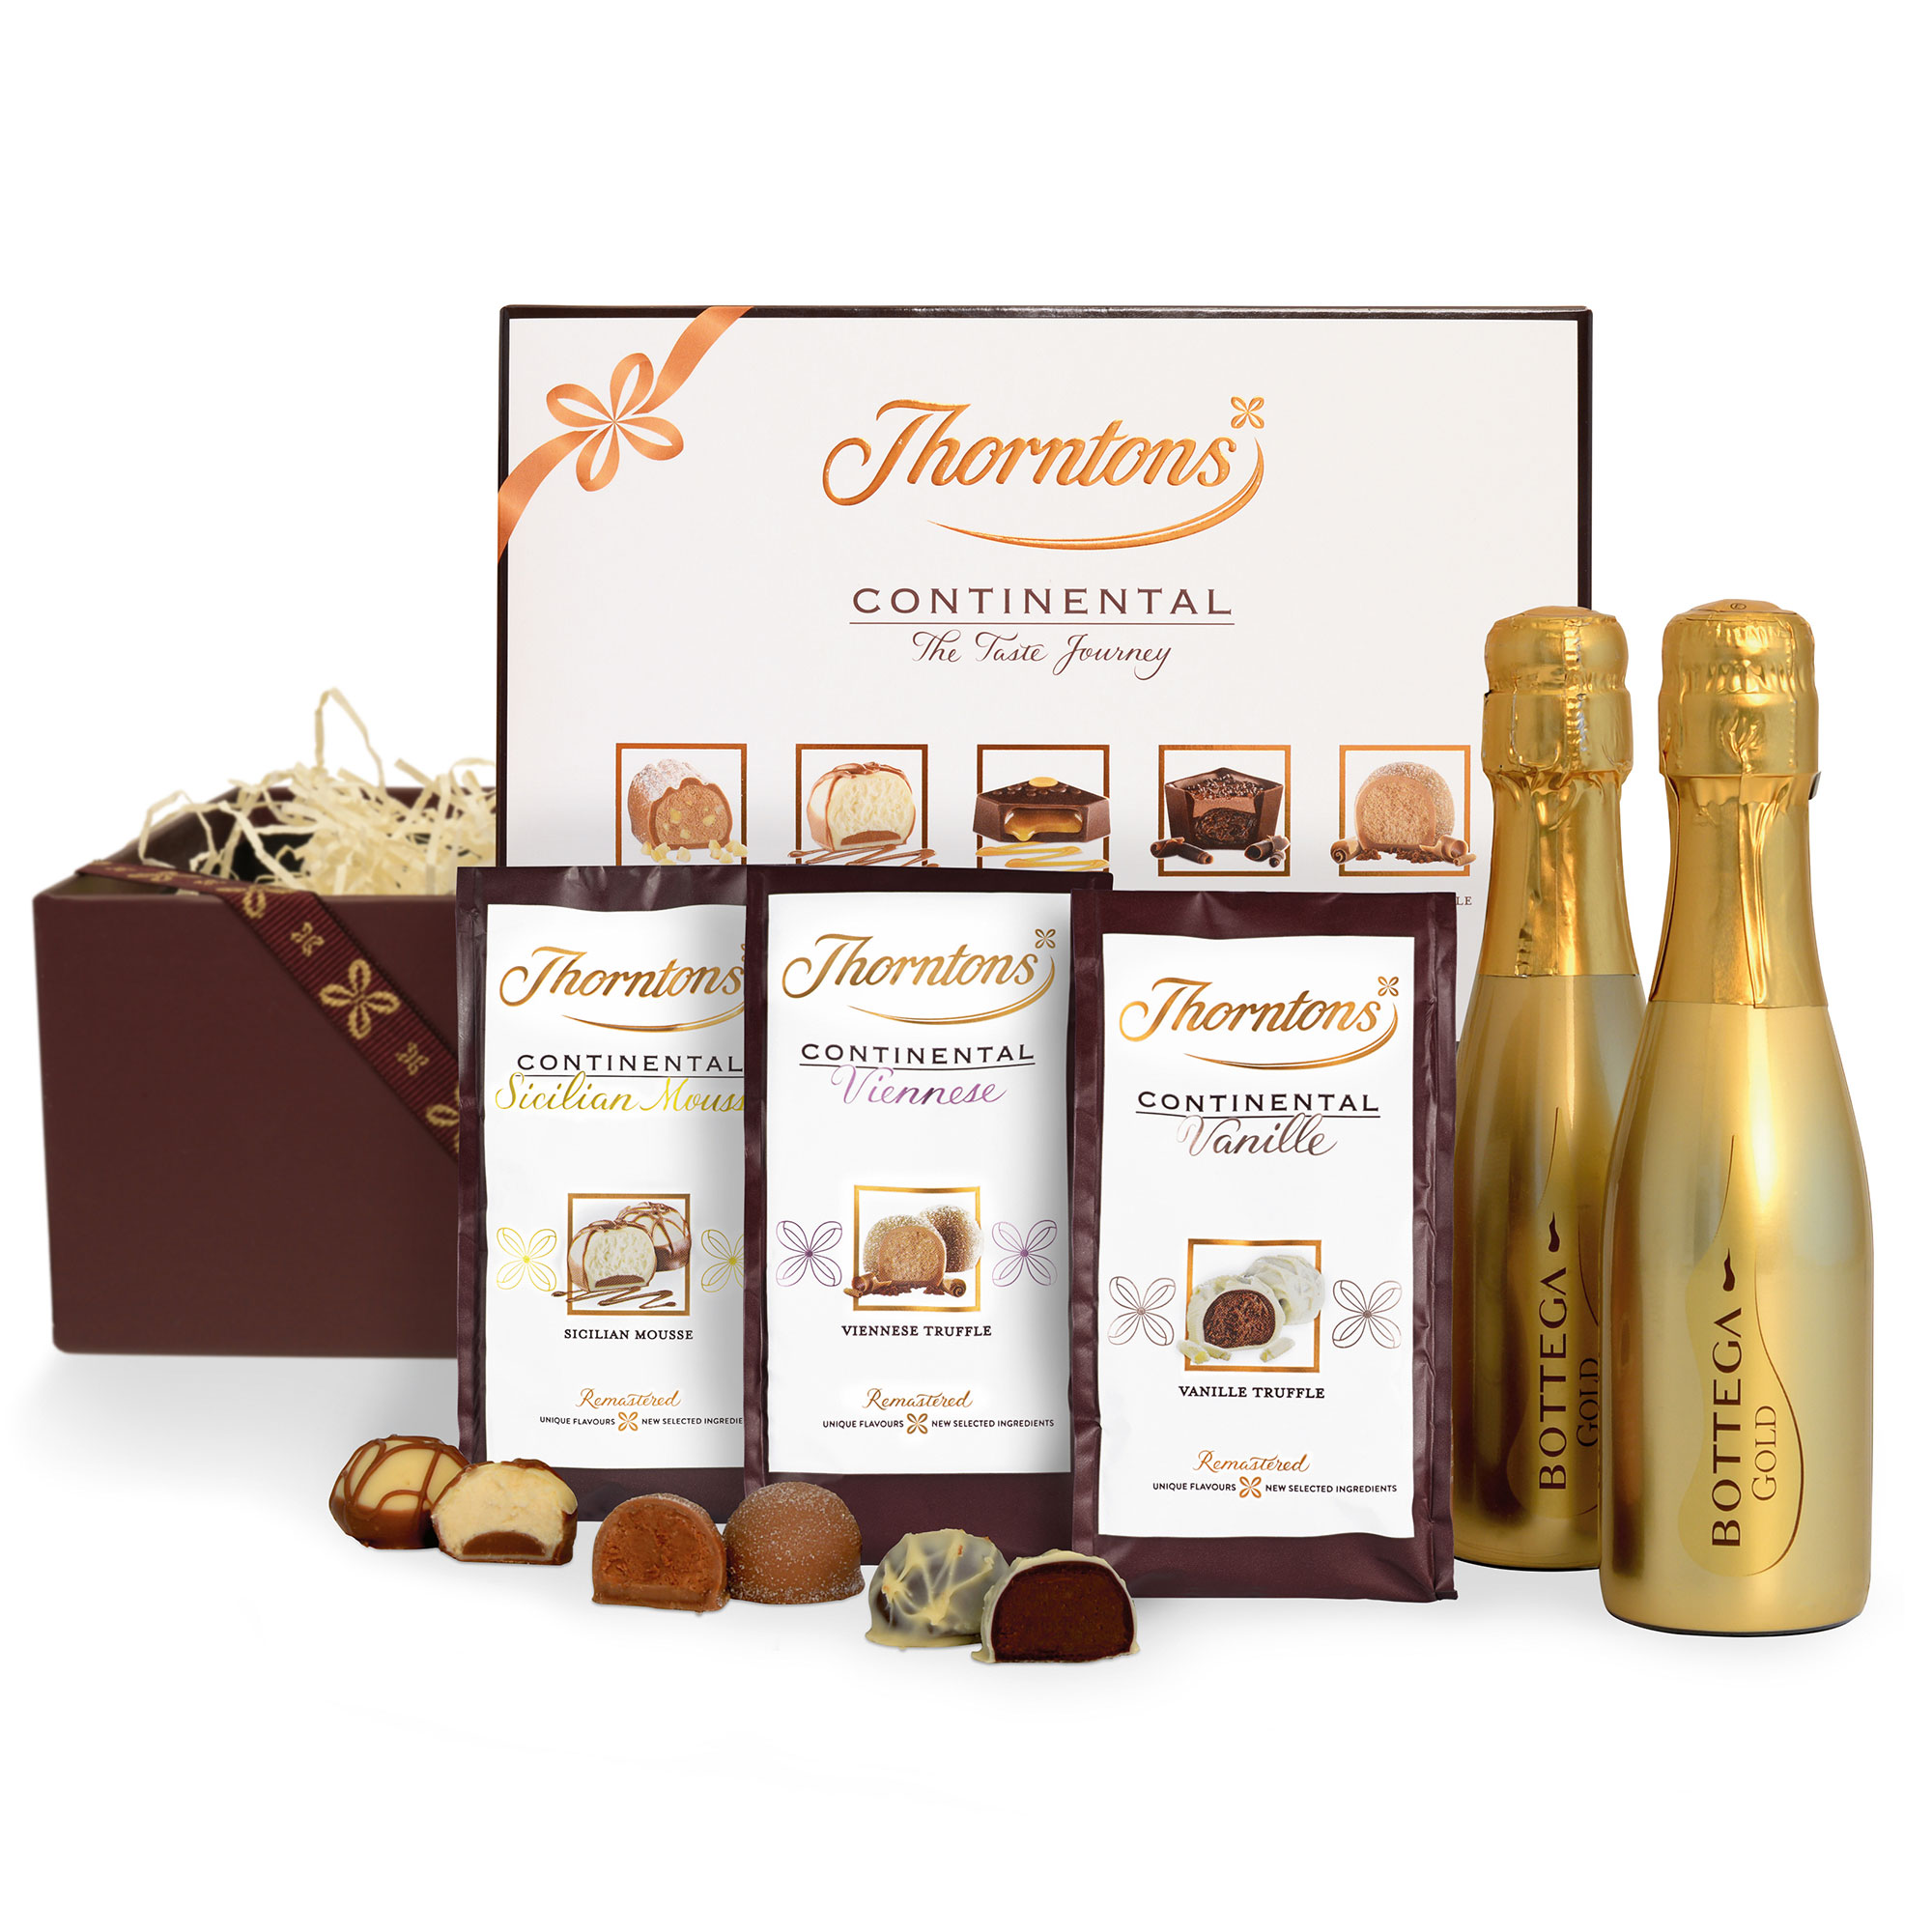 Pick up a Thorntons gift card today! It is the perfect gift for someone that is on-the-go!